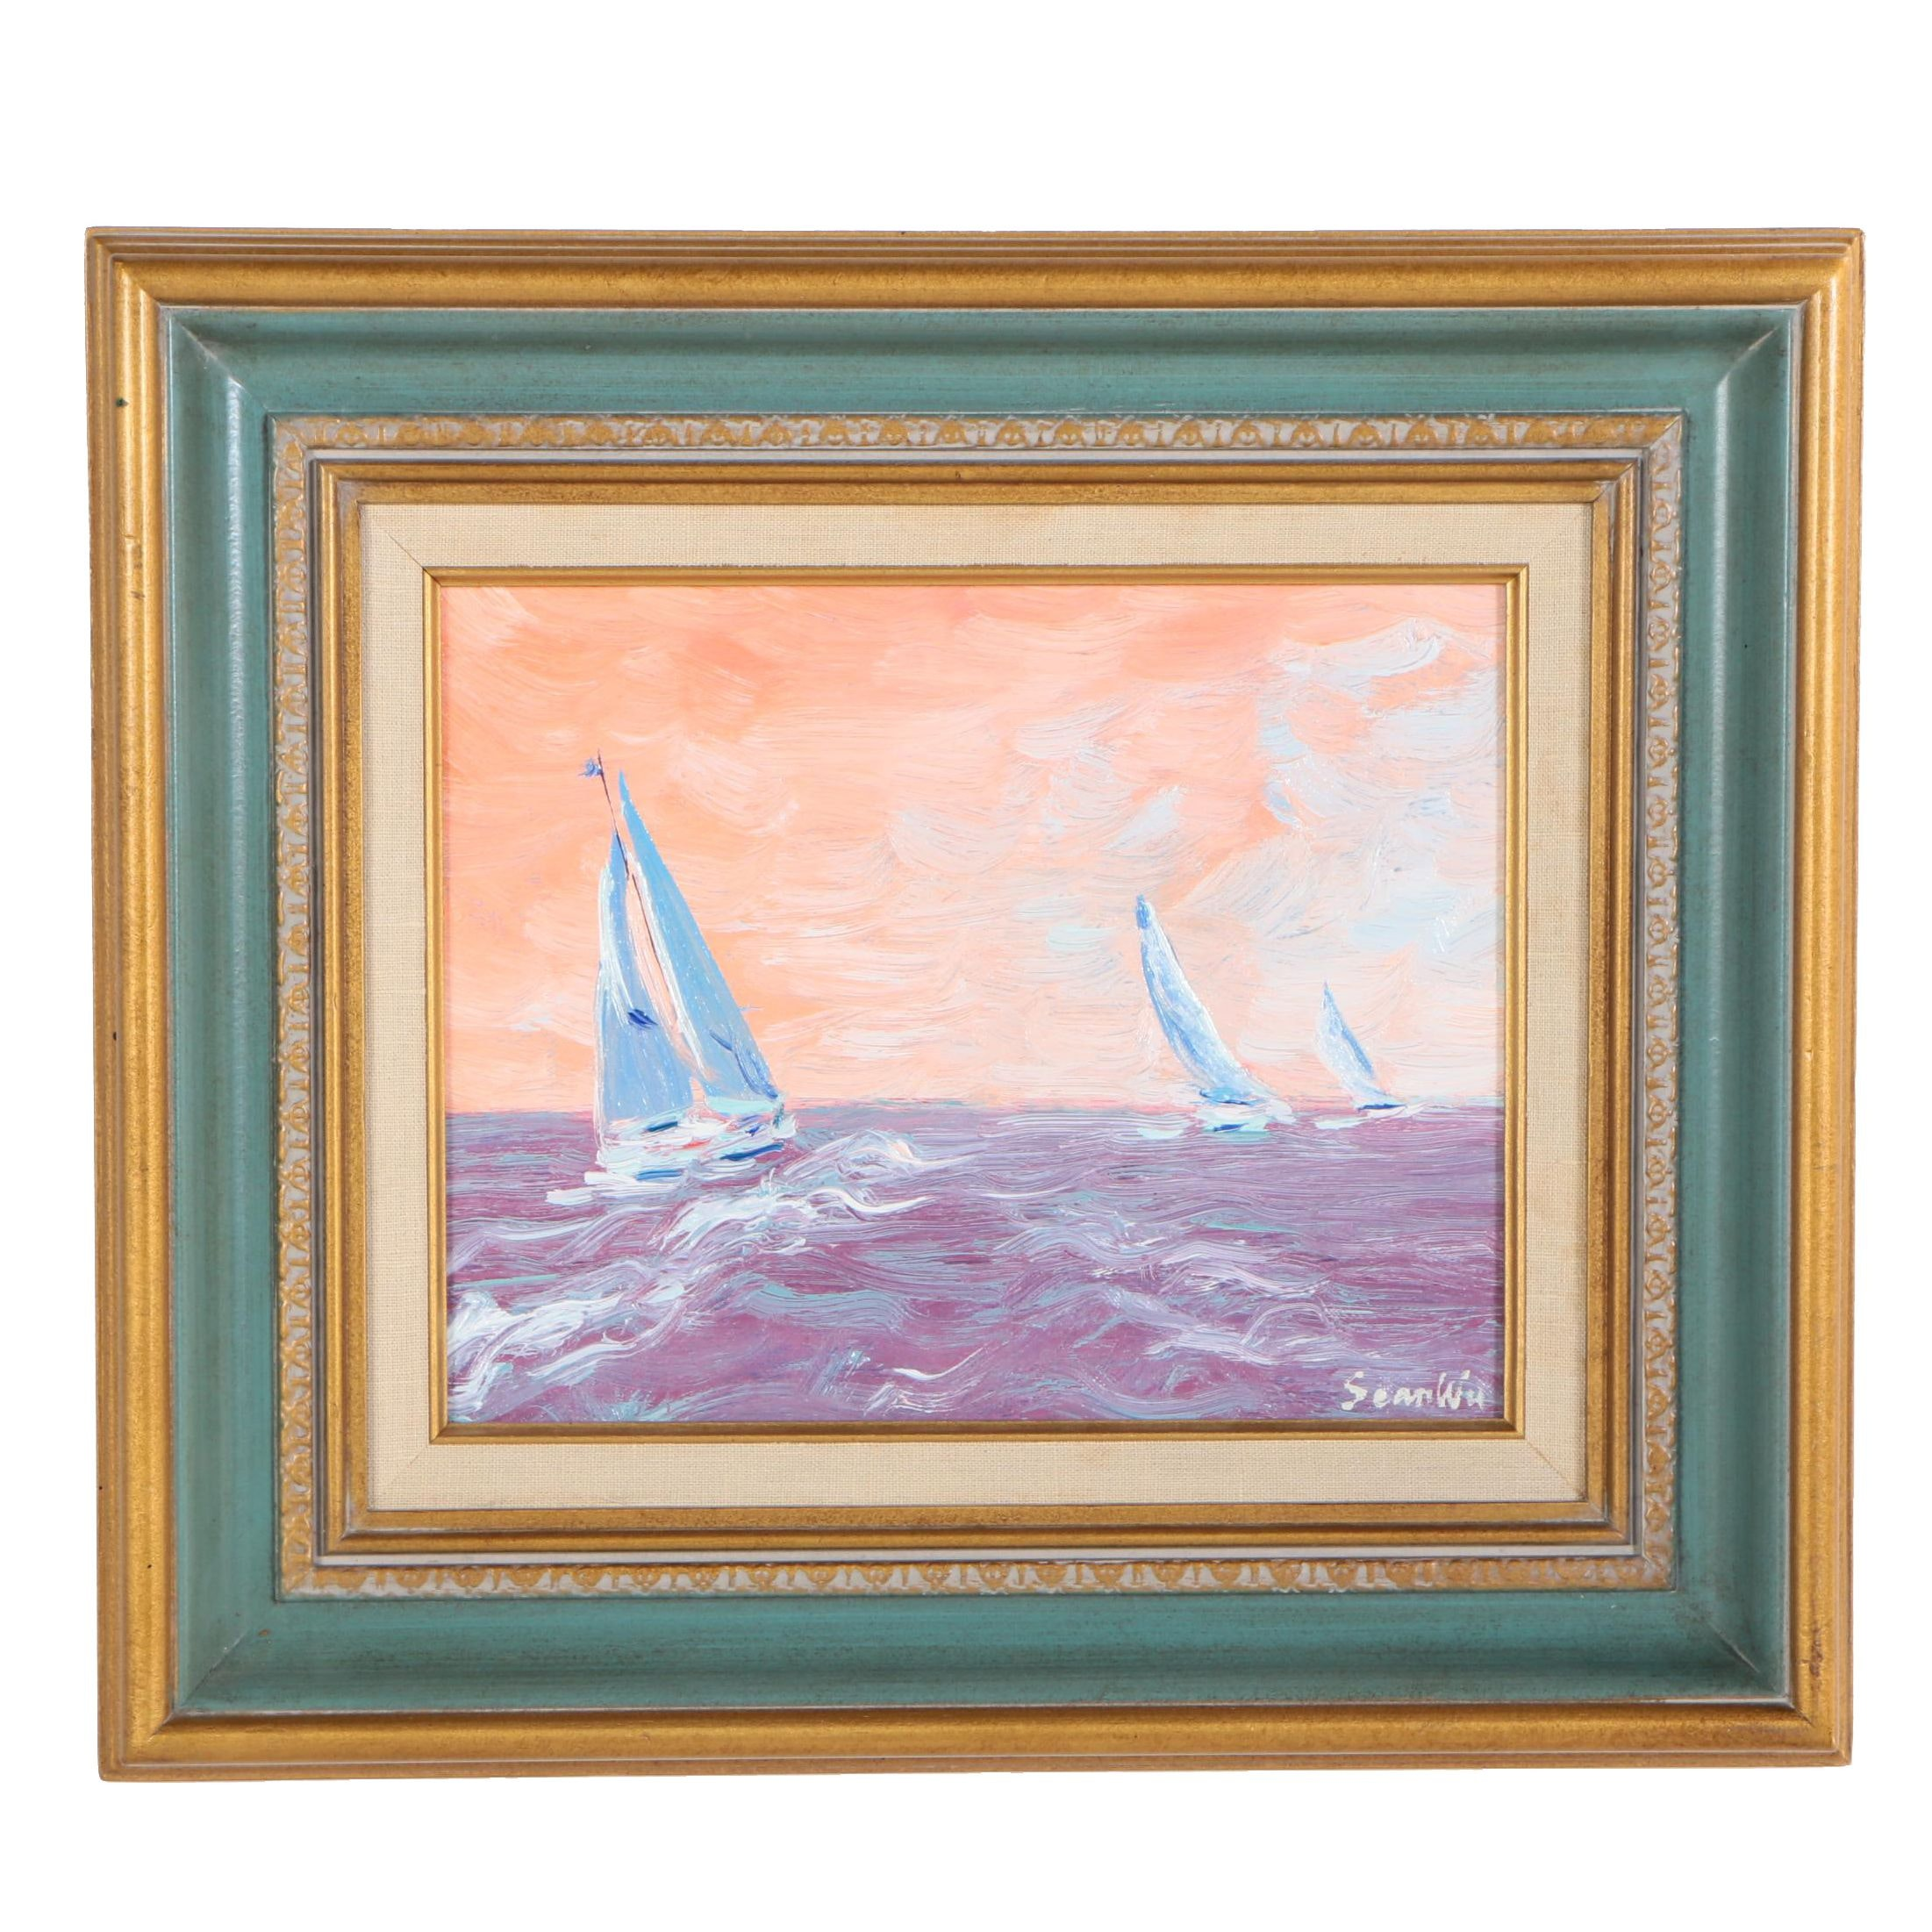 Sean Wu Oil Painting of Sailboats at Sea